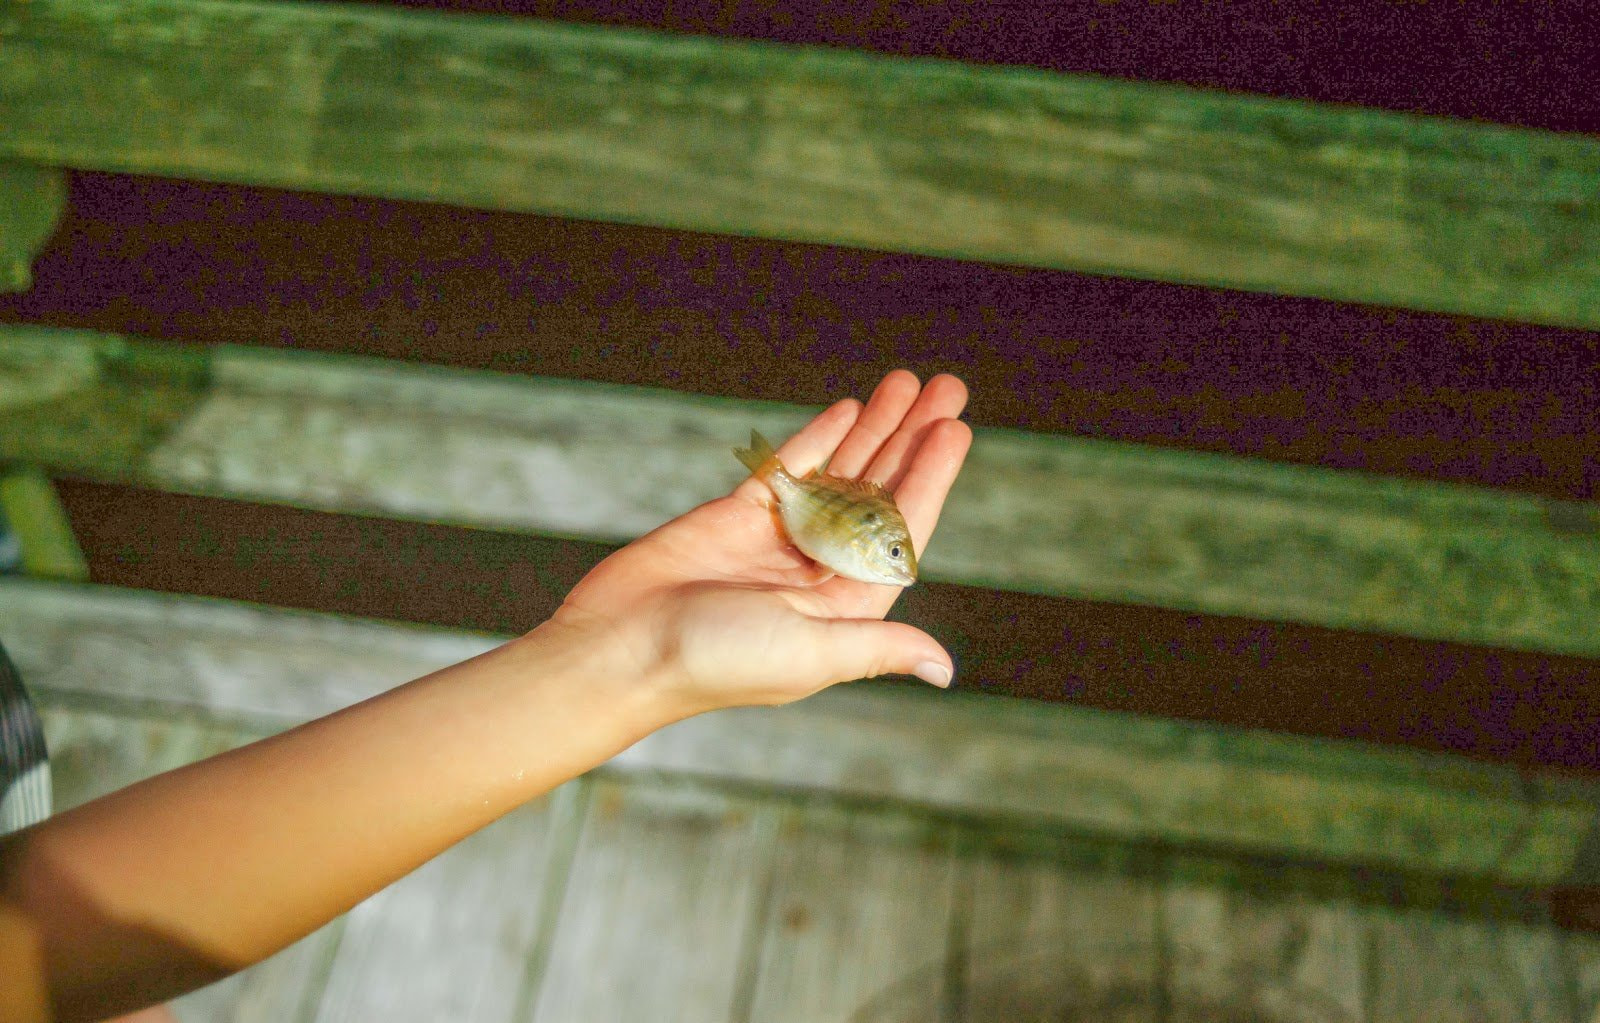 A hand holding a small fish as an example of a JPEG image with visible artifacts by Chad Verzosa